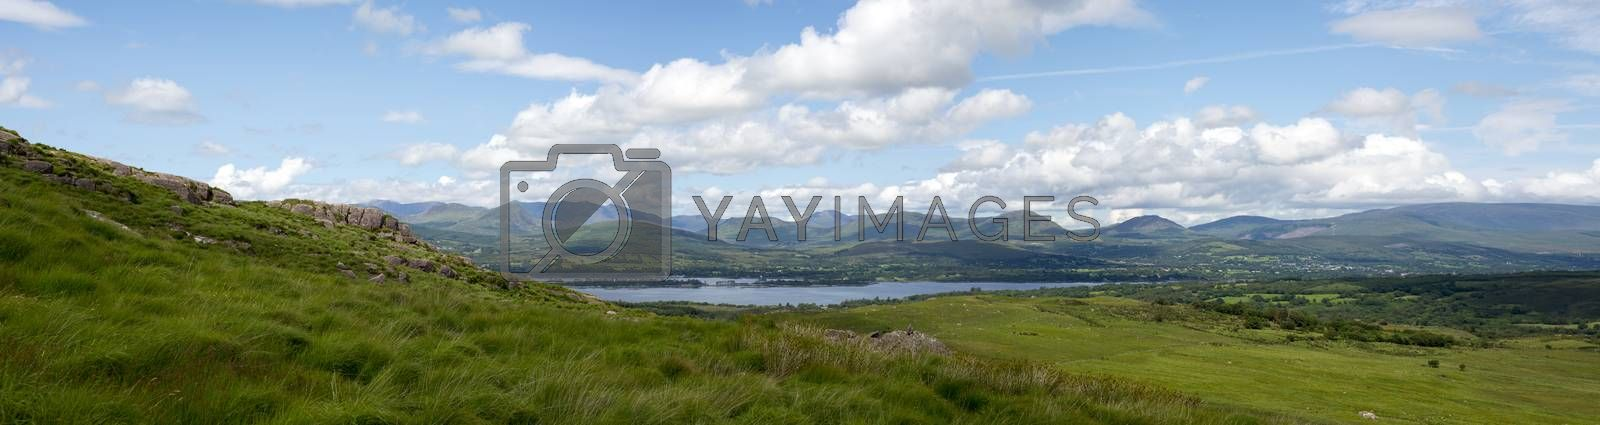 Royalty free image of panorama of the view from the kerry way by morrbyte